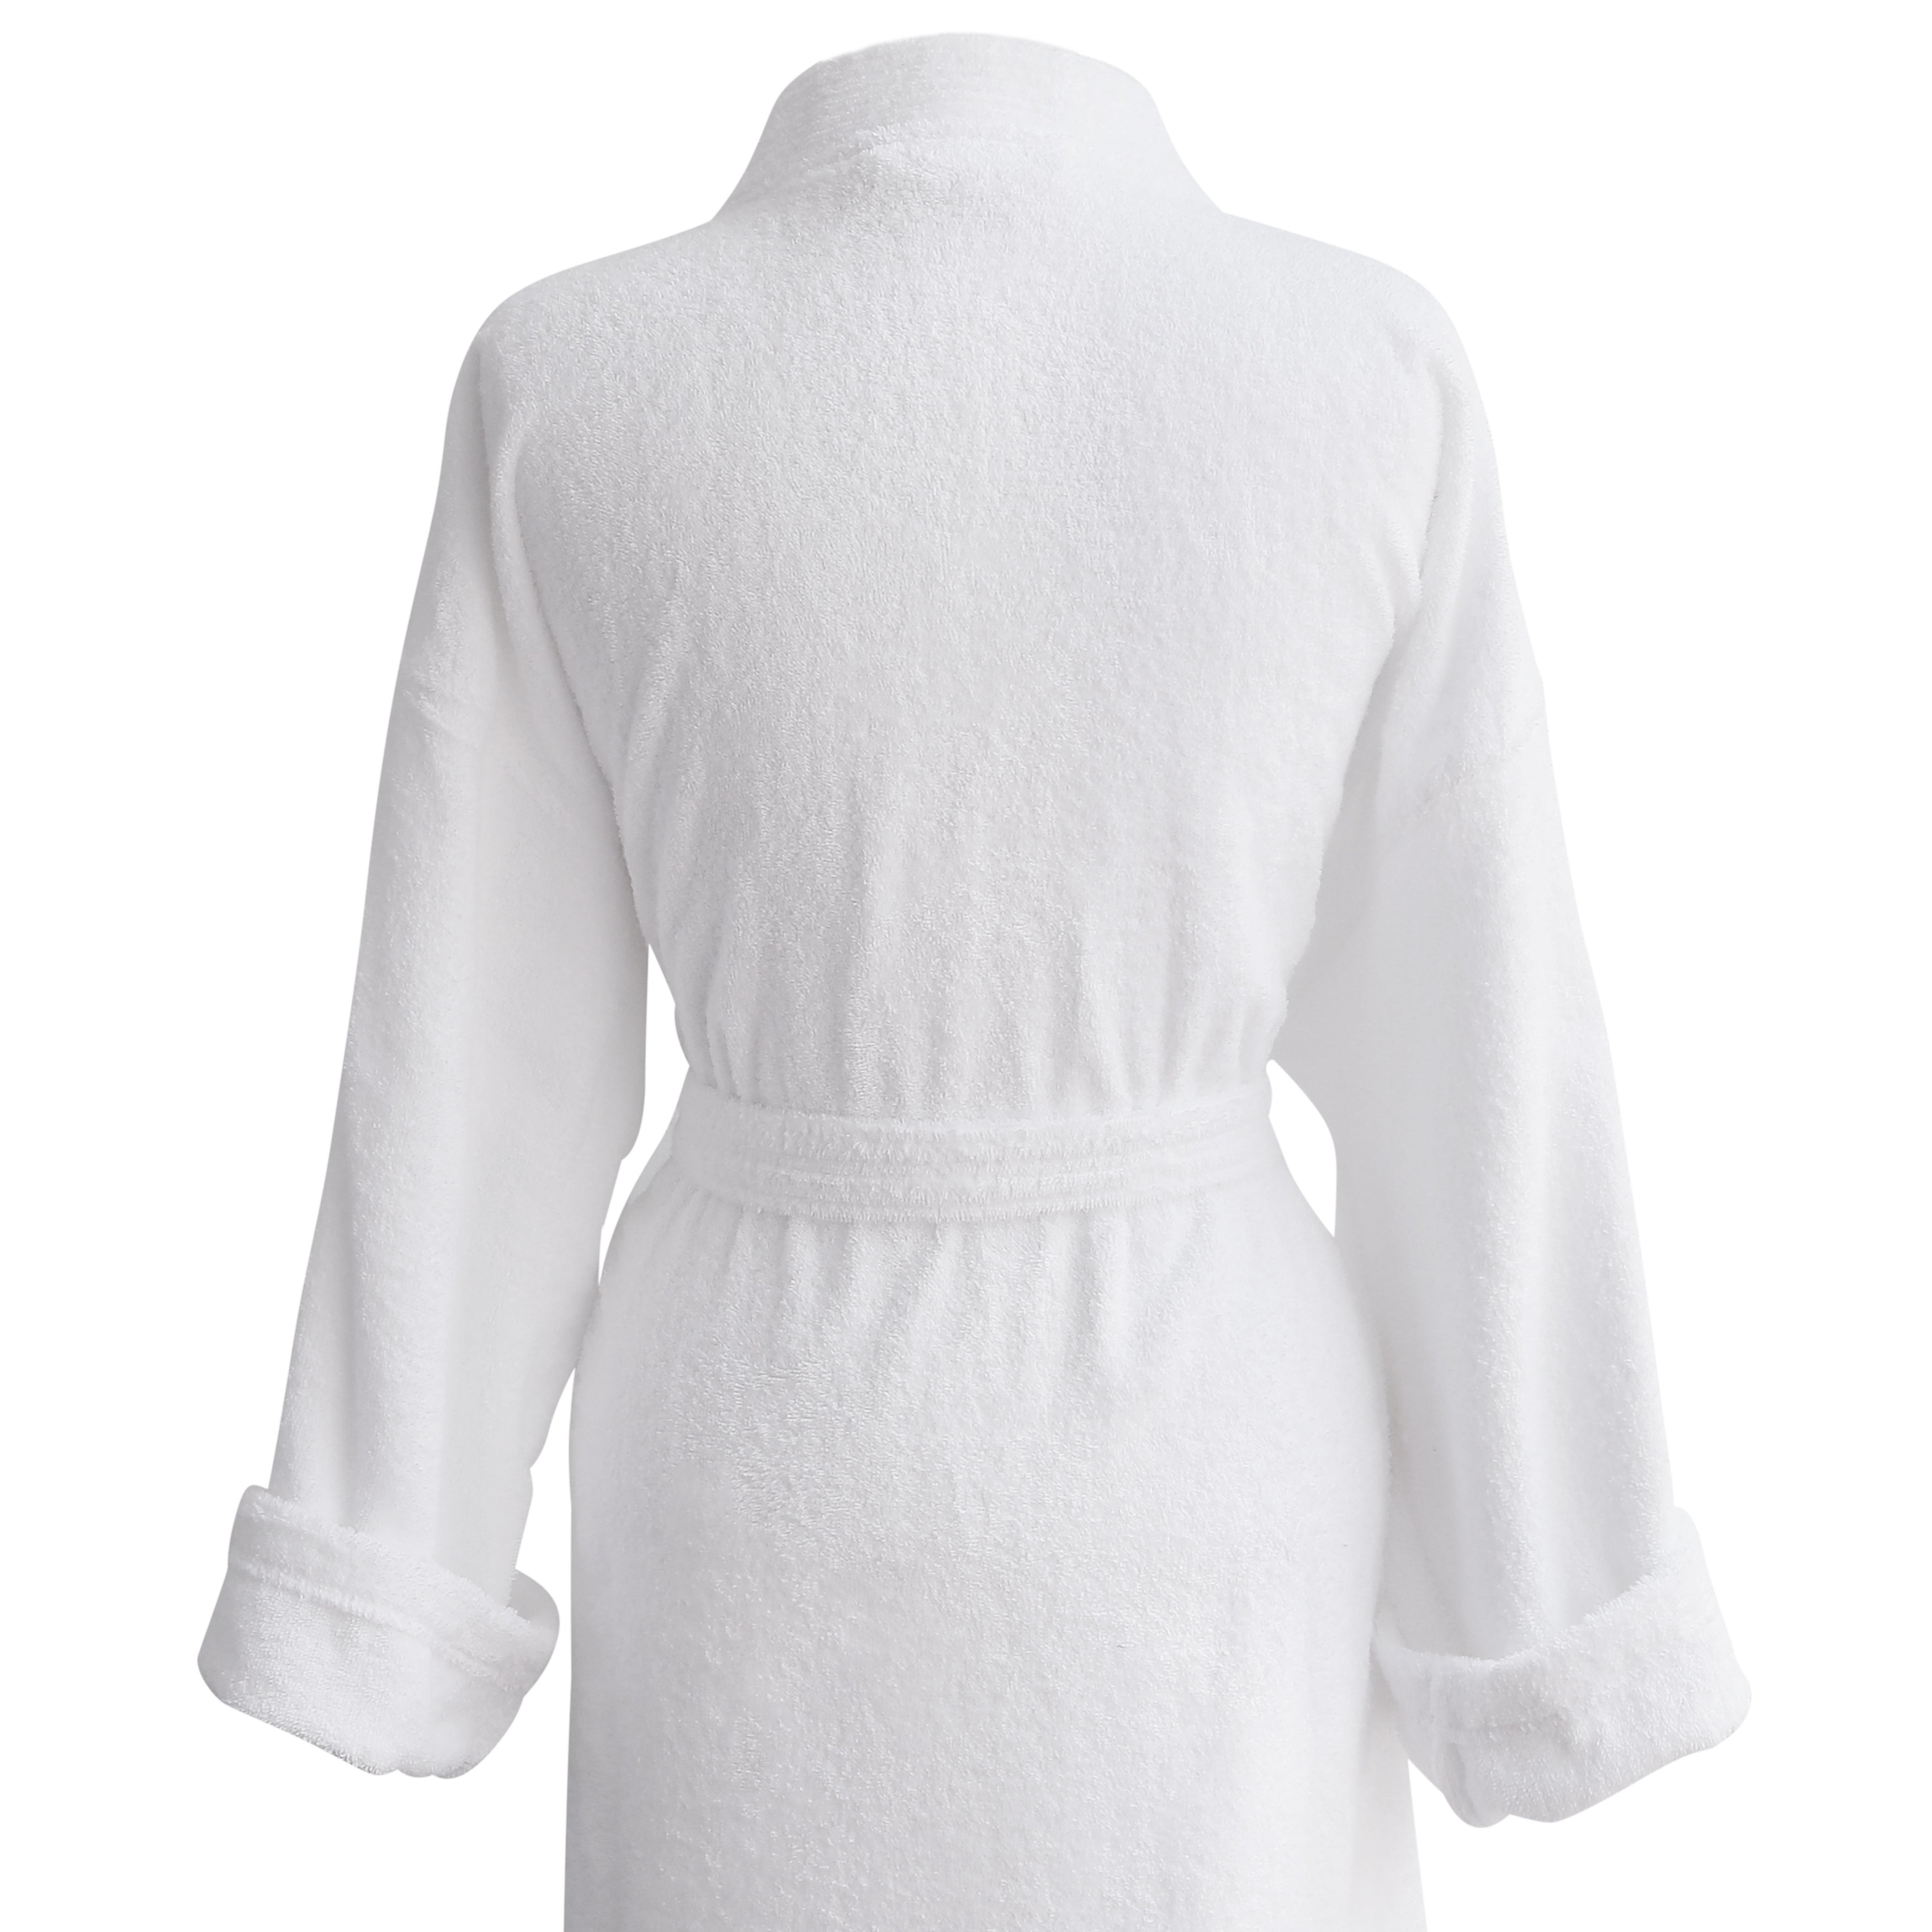 Shop Wyndham Egyptian Cotton Mr. and Mrs. Terry Spa Robe Set - Free  Shipping Today - Overstock - 10631389 47d094615